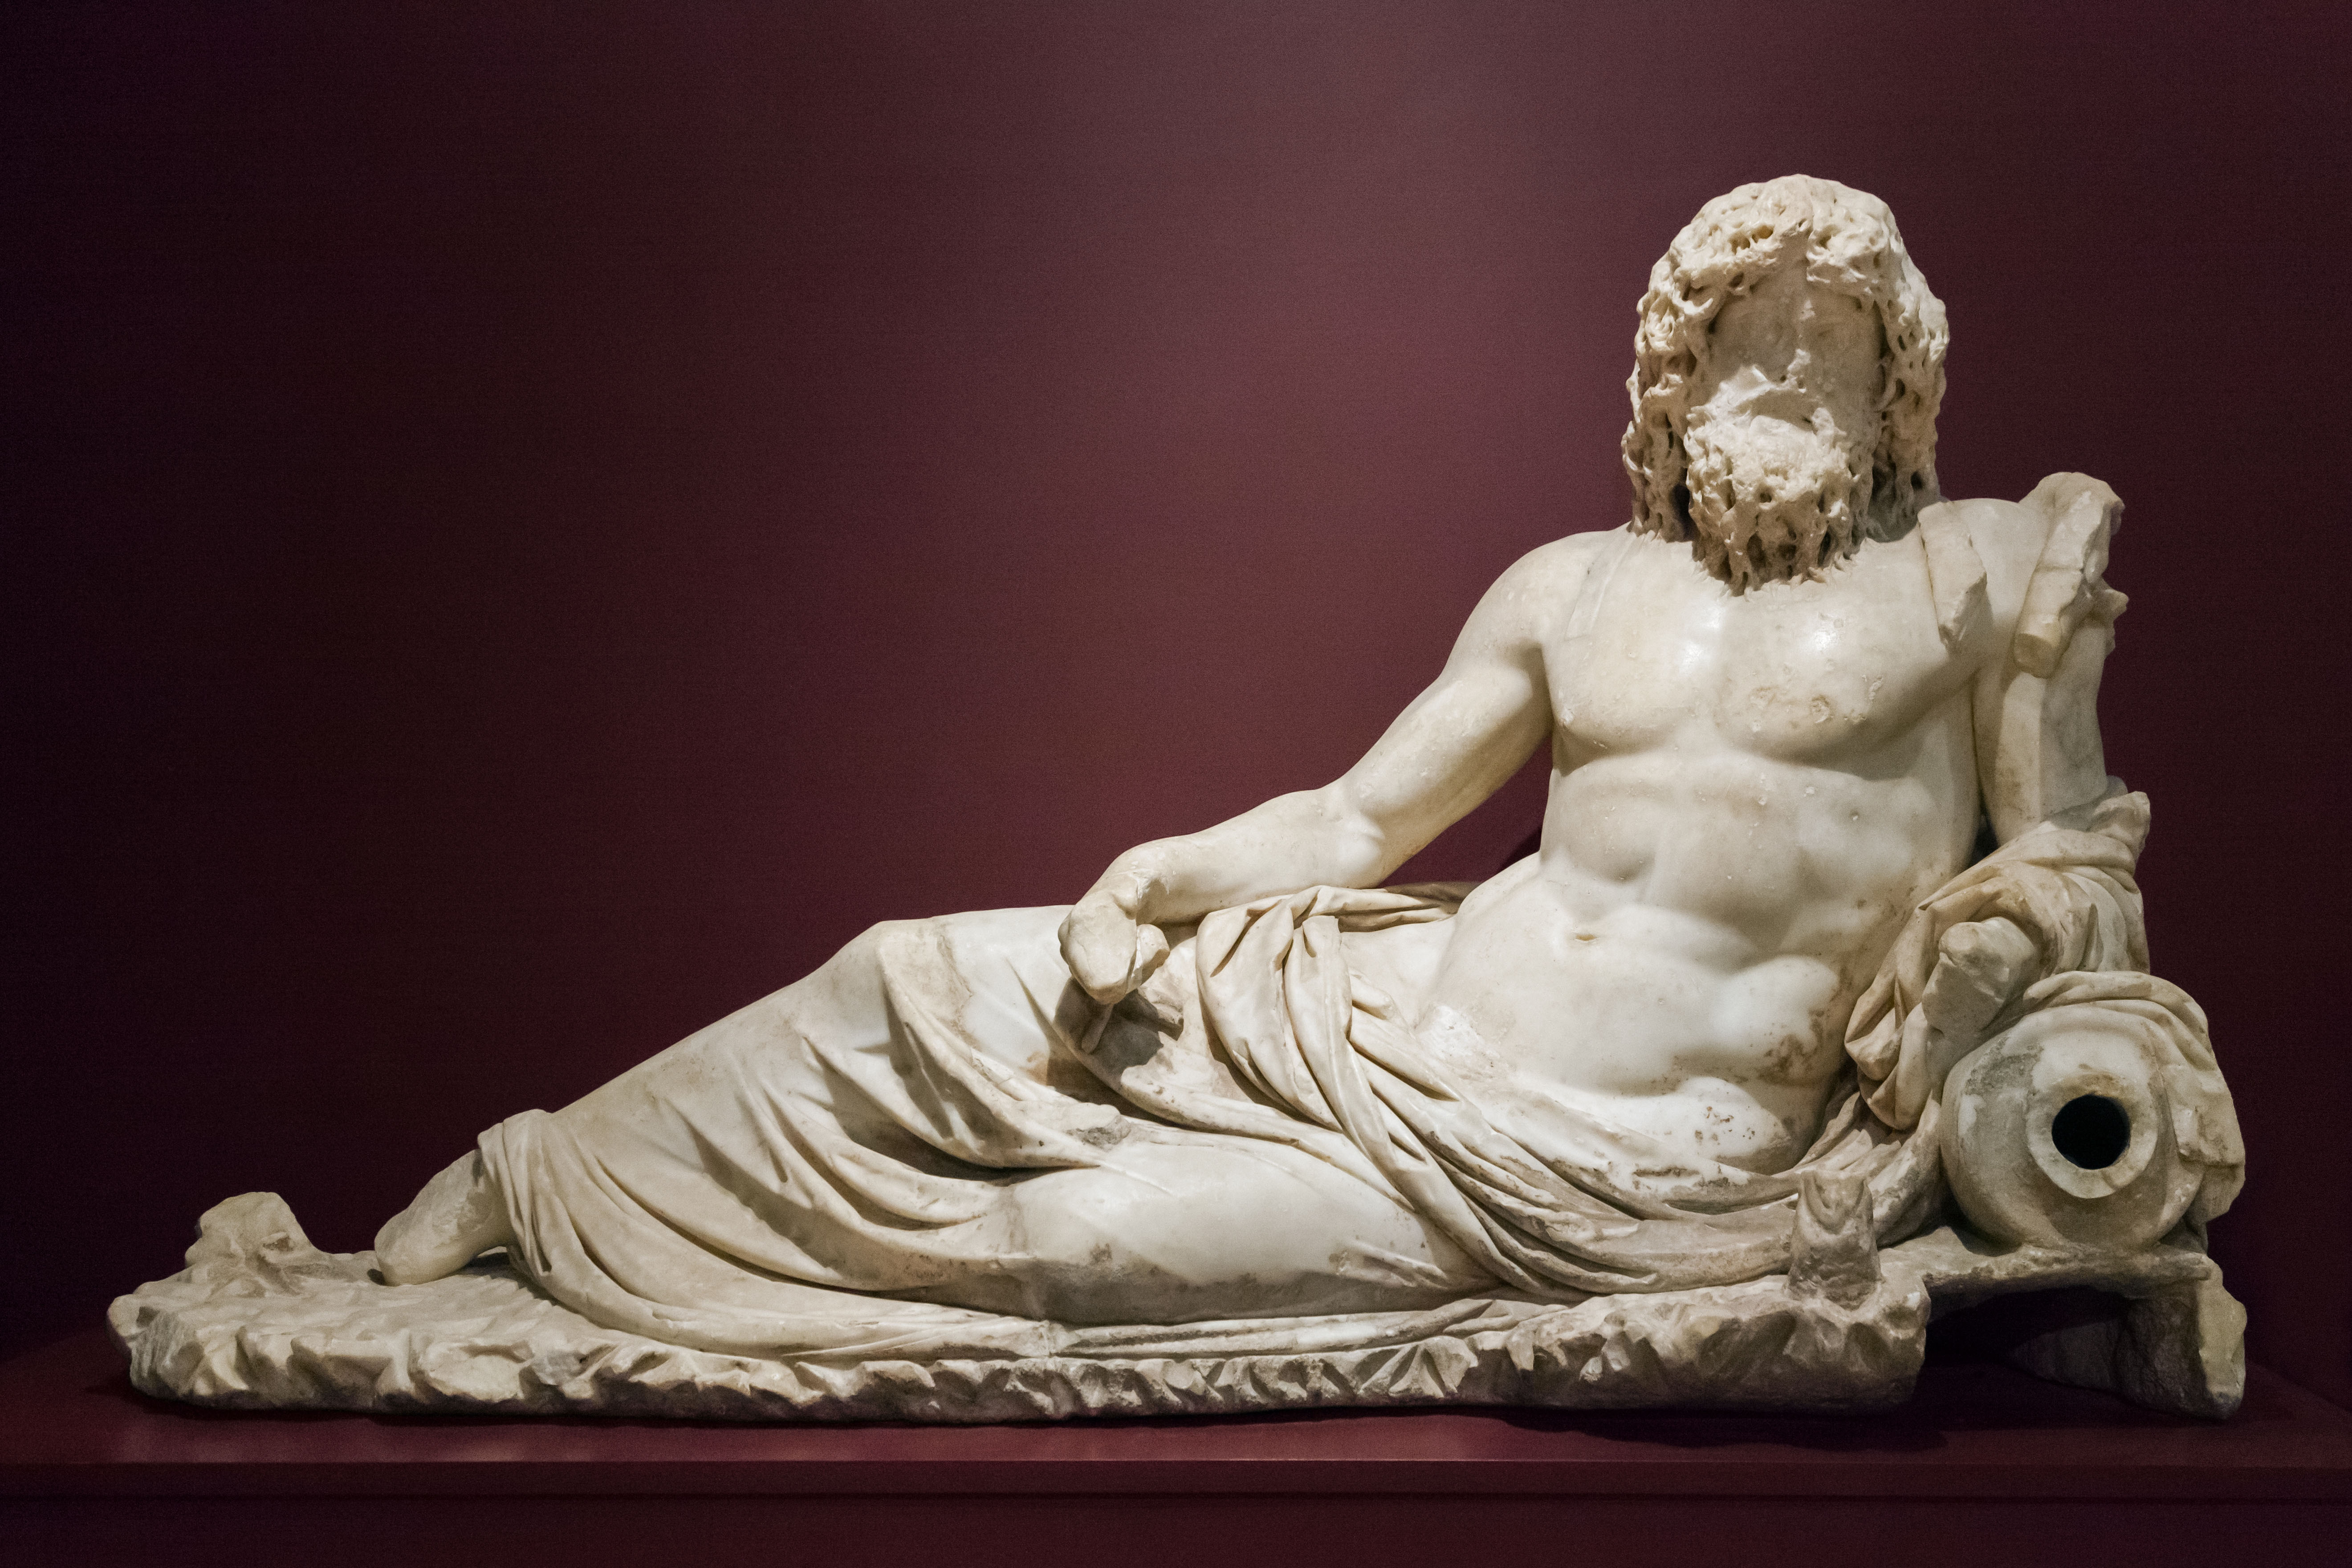 An image of the god Oceanus in statue form.